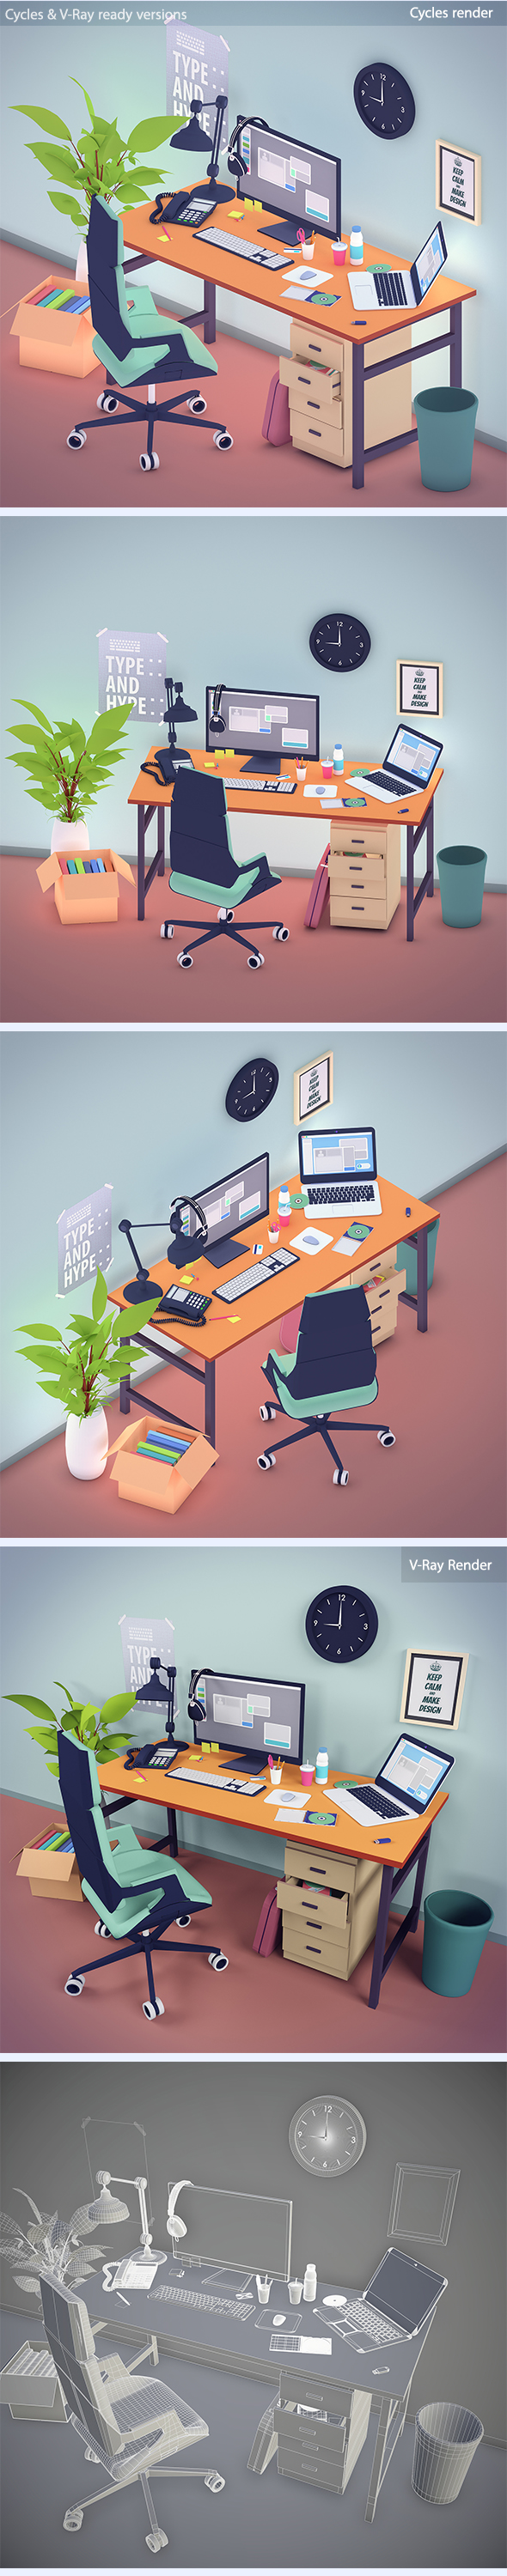 Office workstation in toon 3d style - 3DOcean Item for Sale